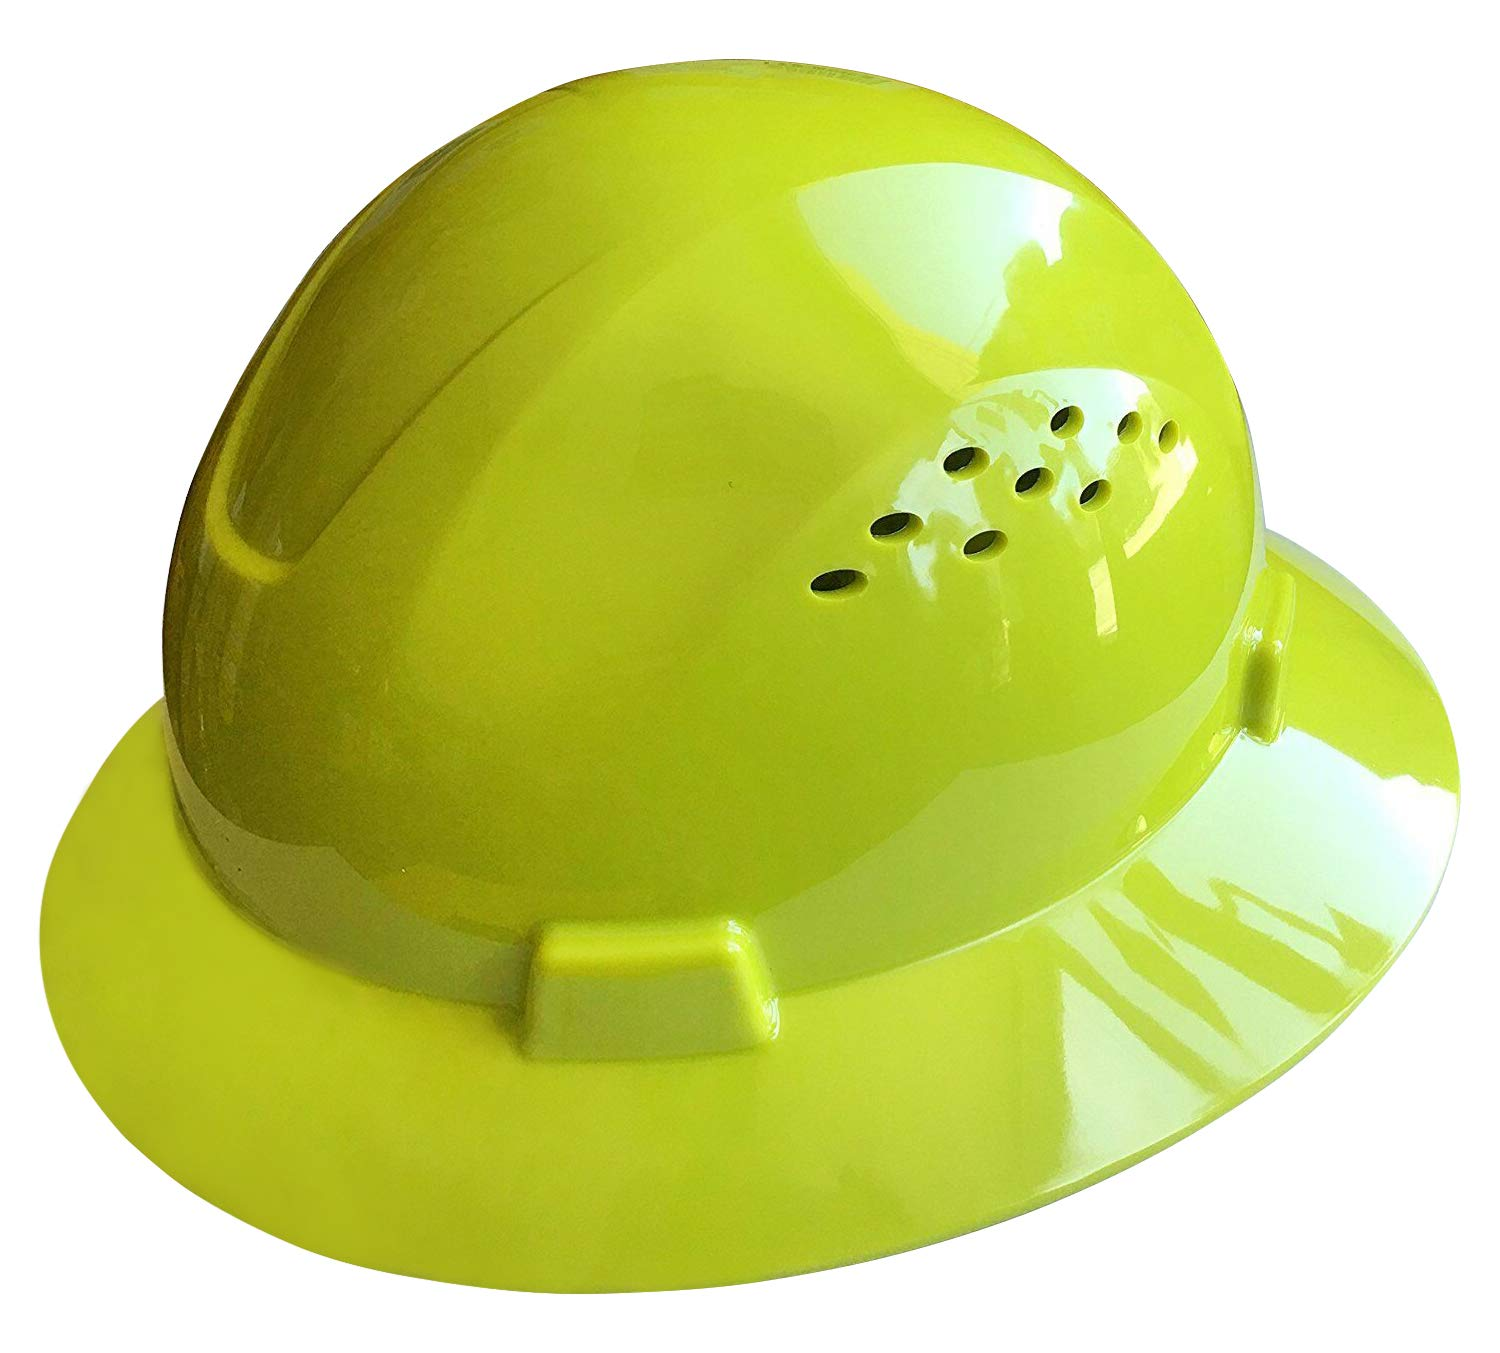 Noa Store HDPE Lime Full Brim Hard Hat with Fas-trac Suspension by Noa Store (Image #1)